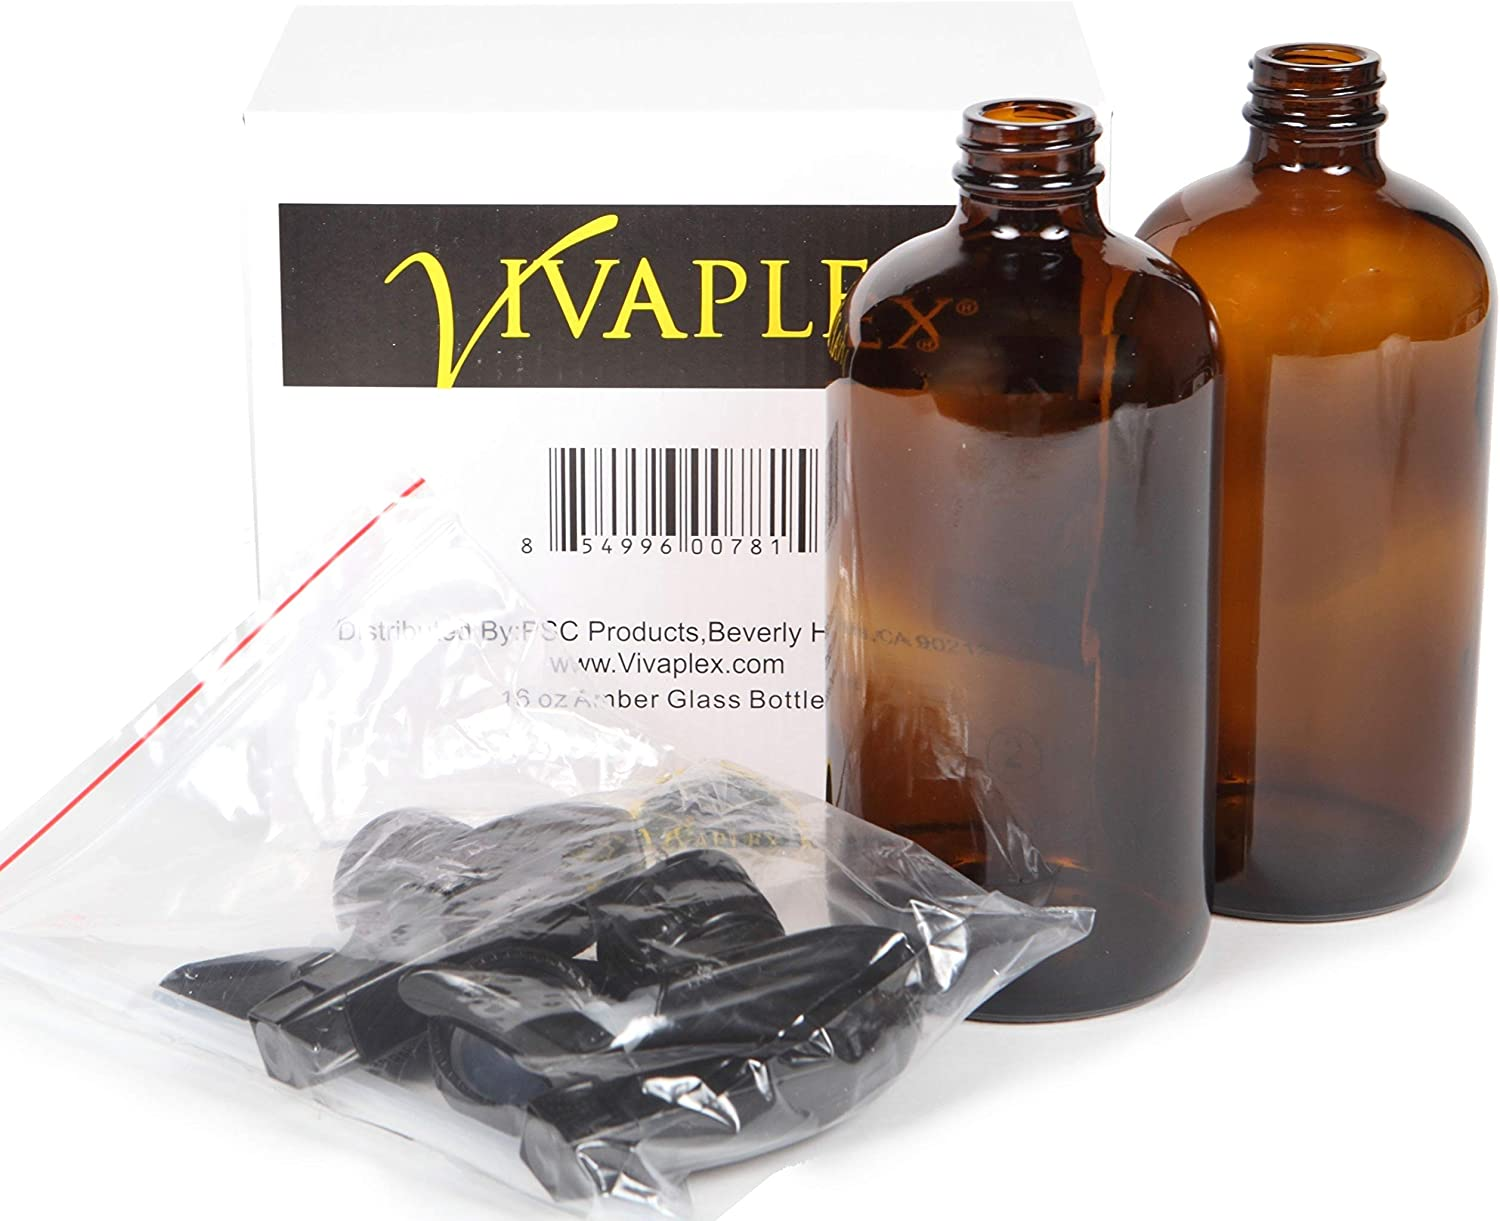 Vivaplex, 2, Large, 16 oz, Empty, Amber Glass Spray Bottles with Black Trigger Sprayers and Lids